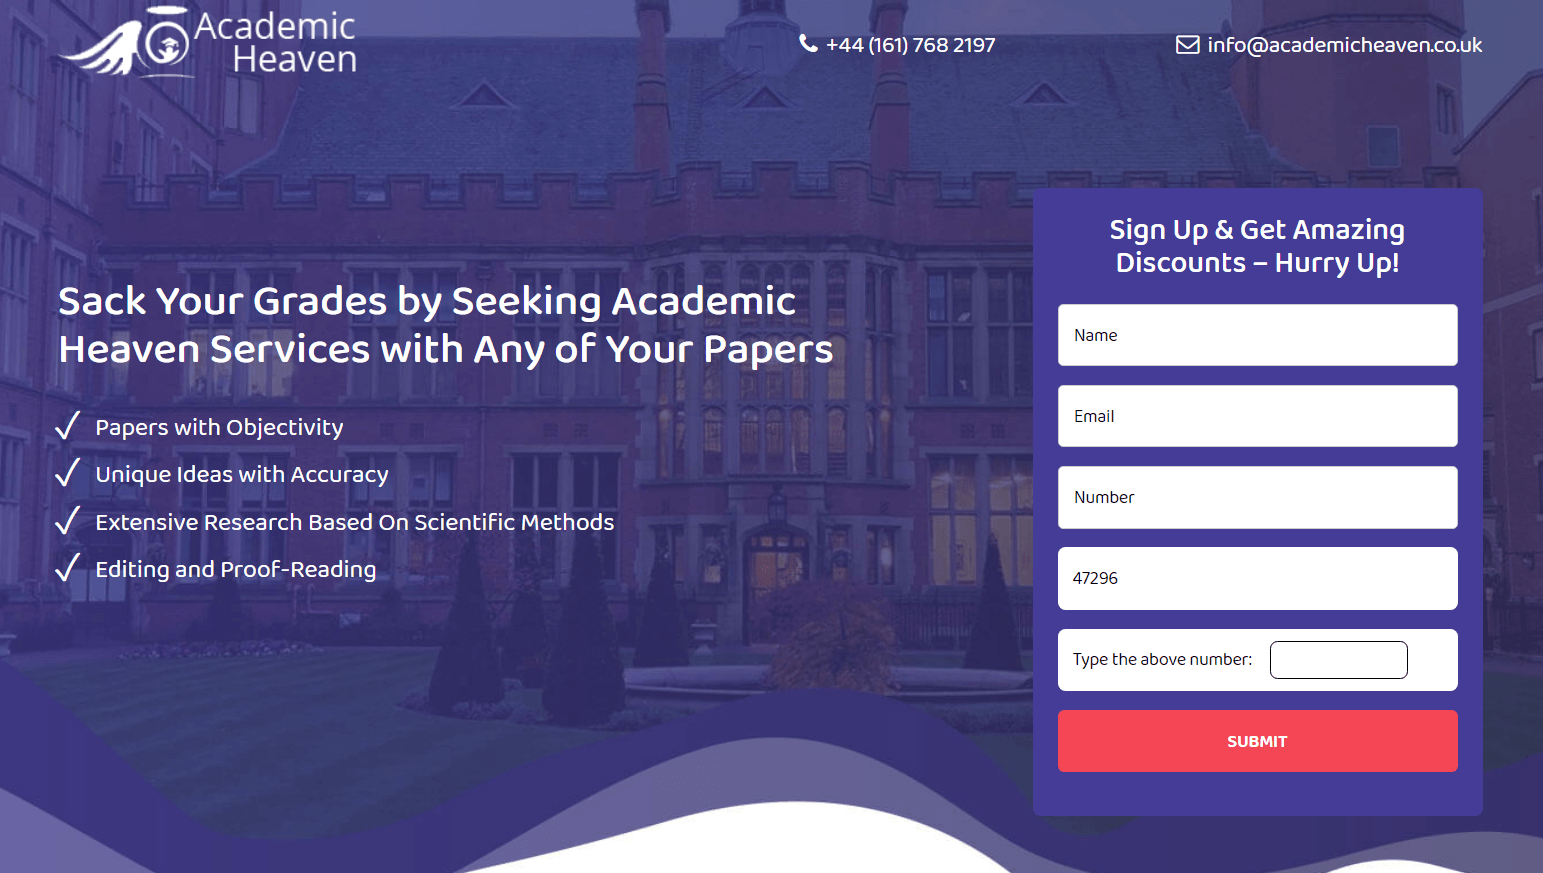 academicheaven.co.uk